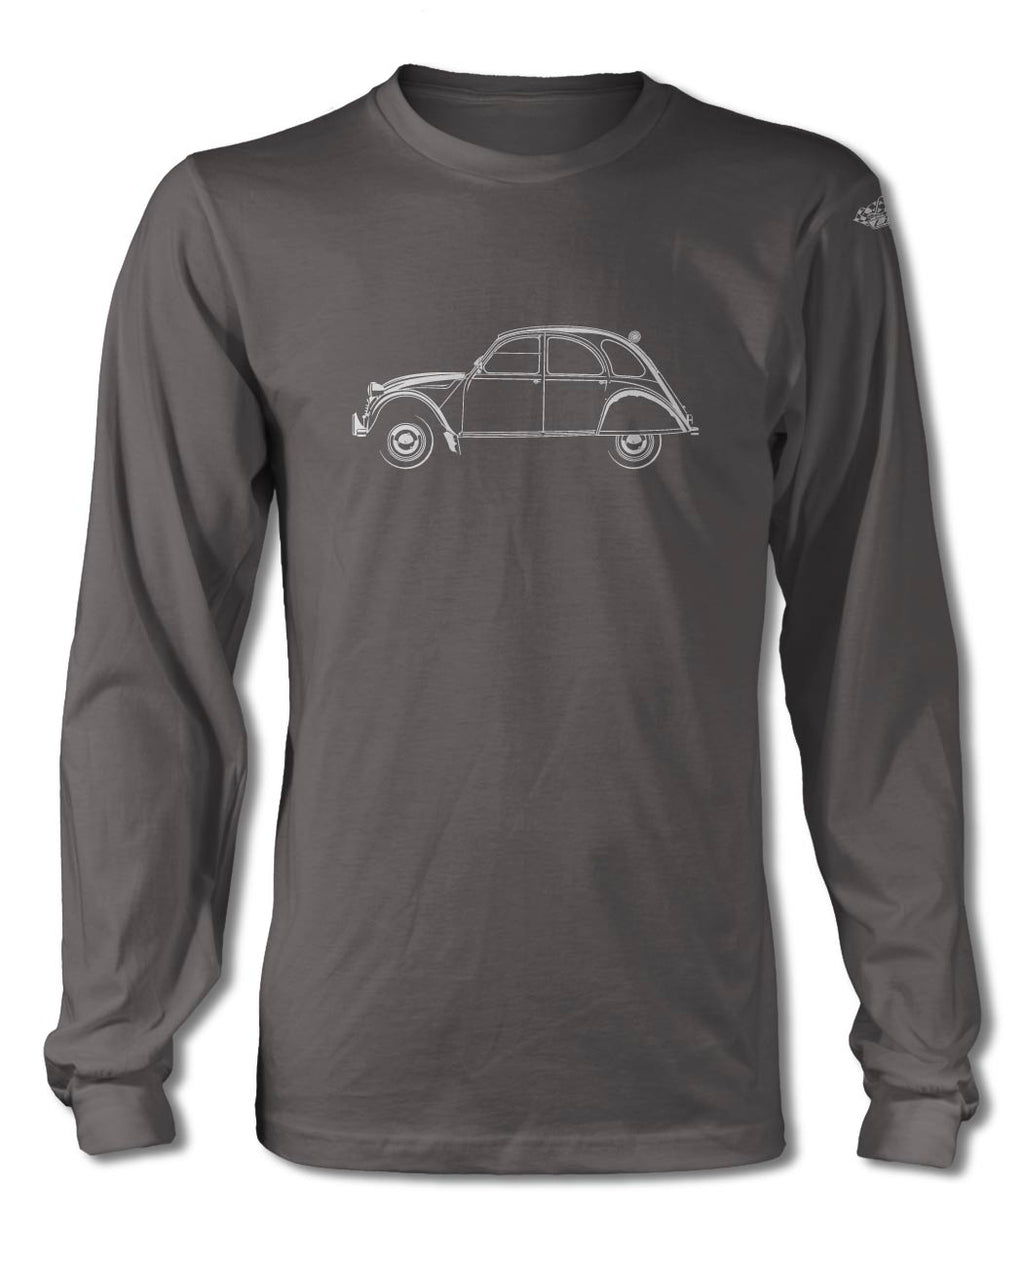 Citroen 2CV Deux Chevaux T-Shirt - Long Sleeves - Side View